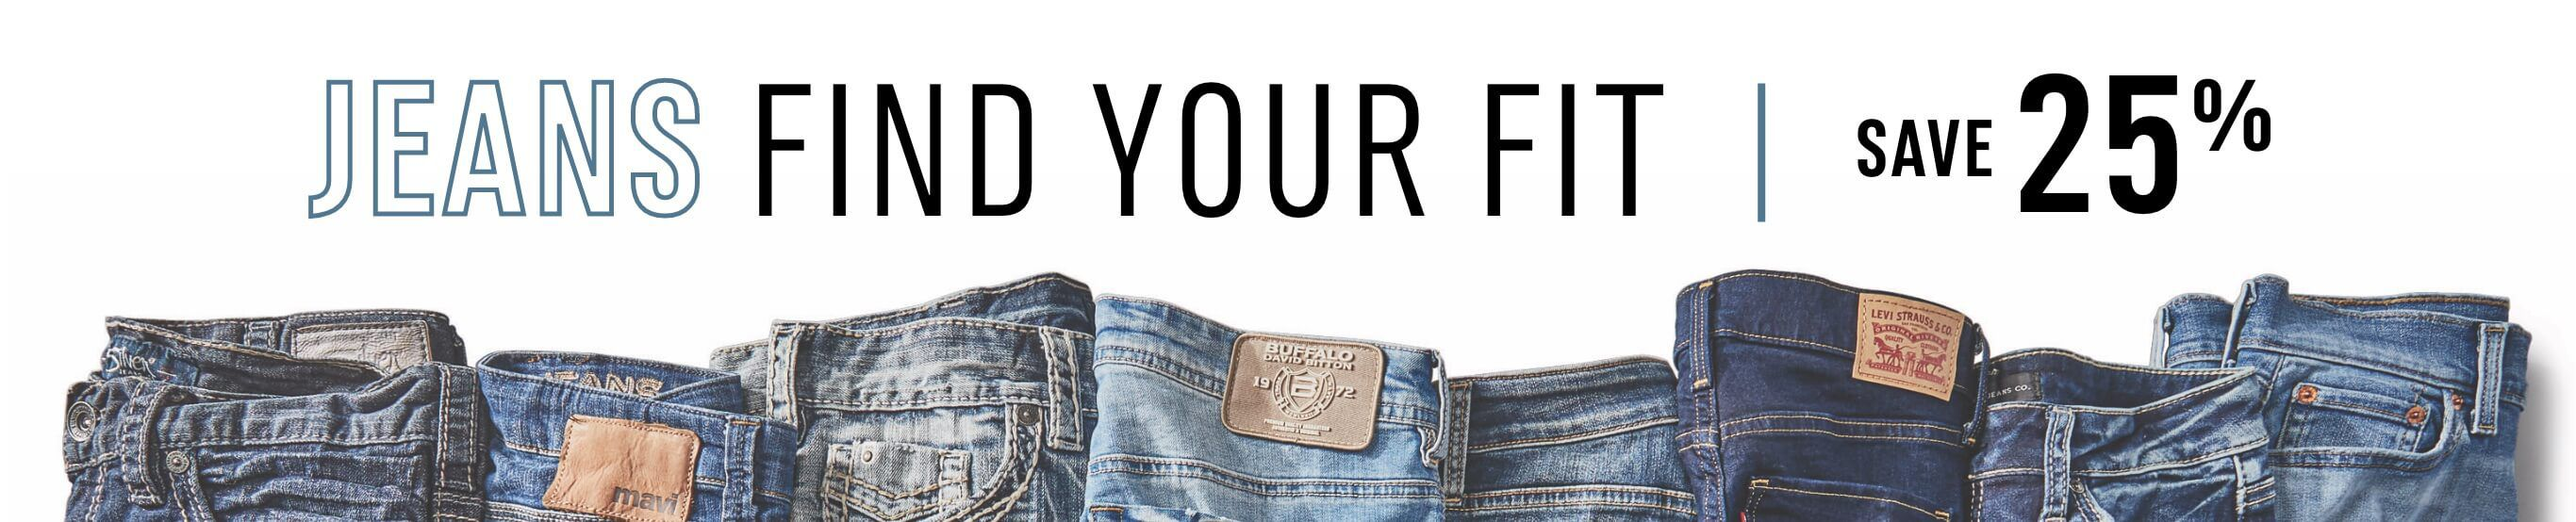 Jeans. Find your Fit and Save 25%!